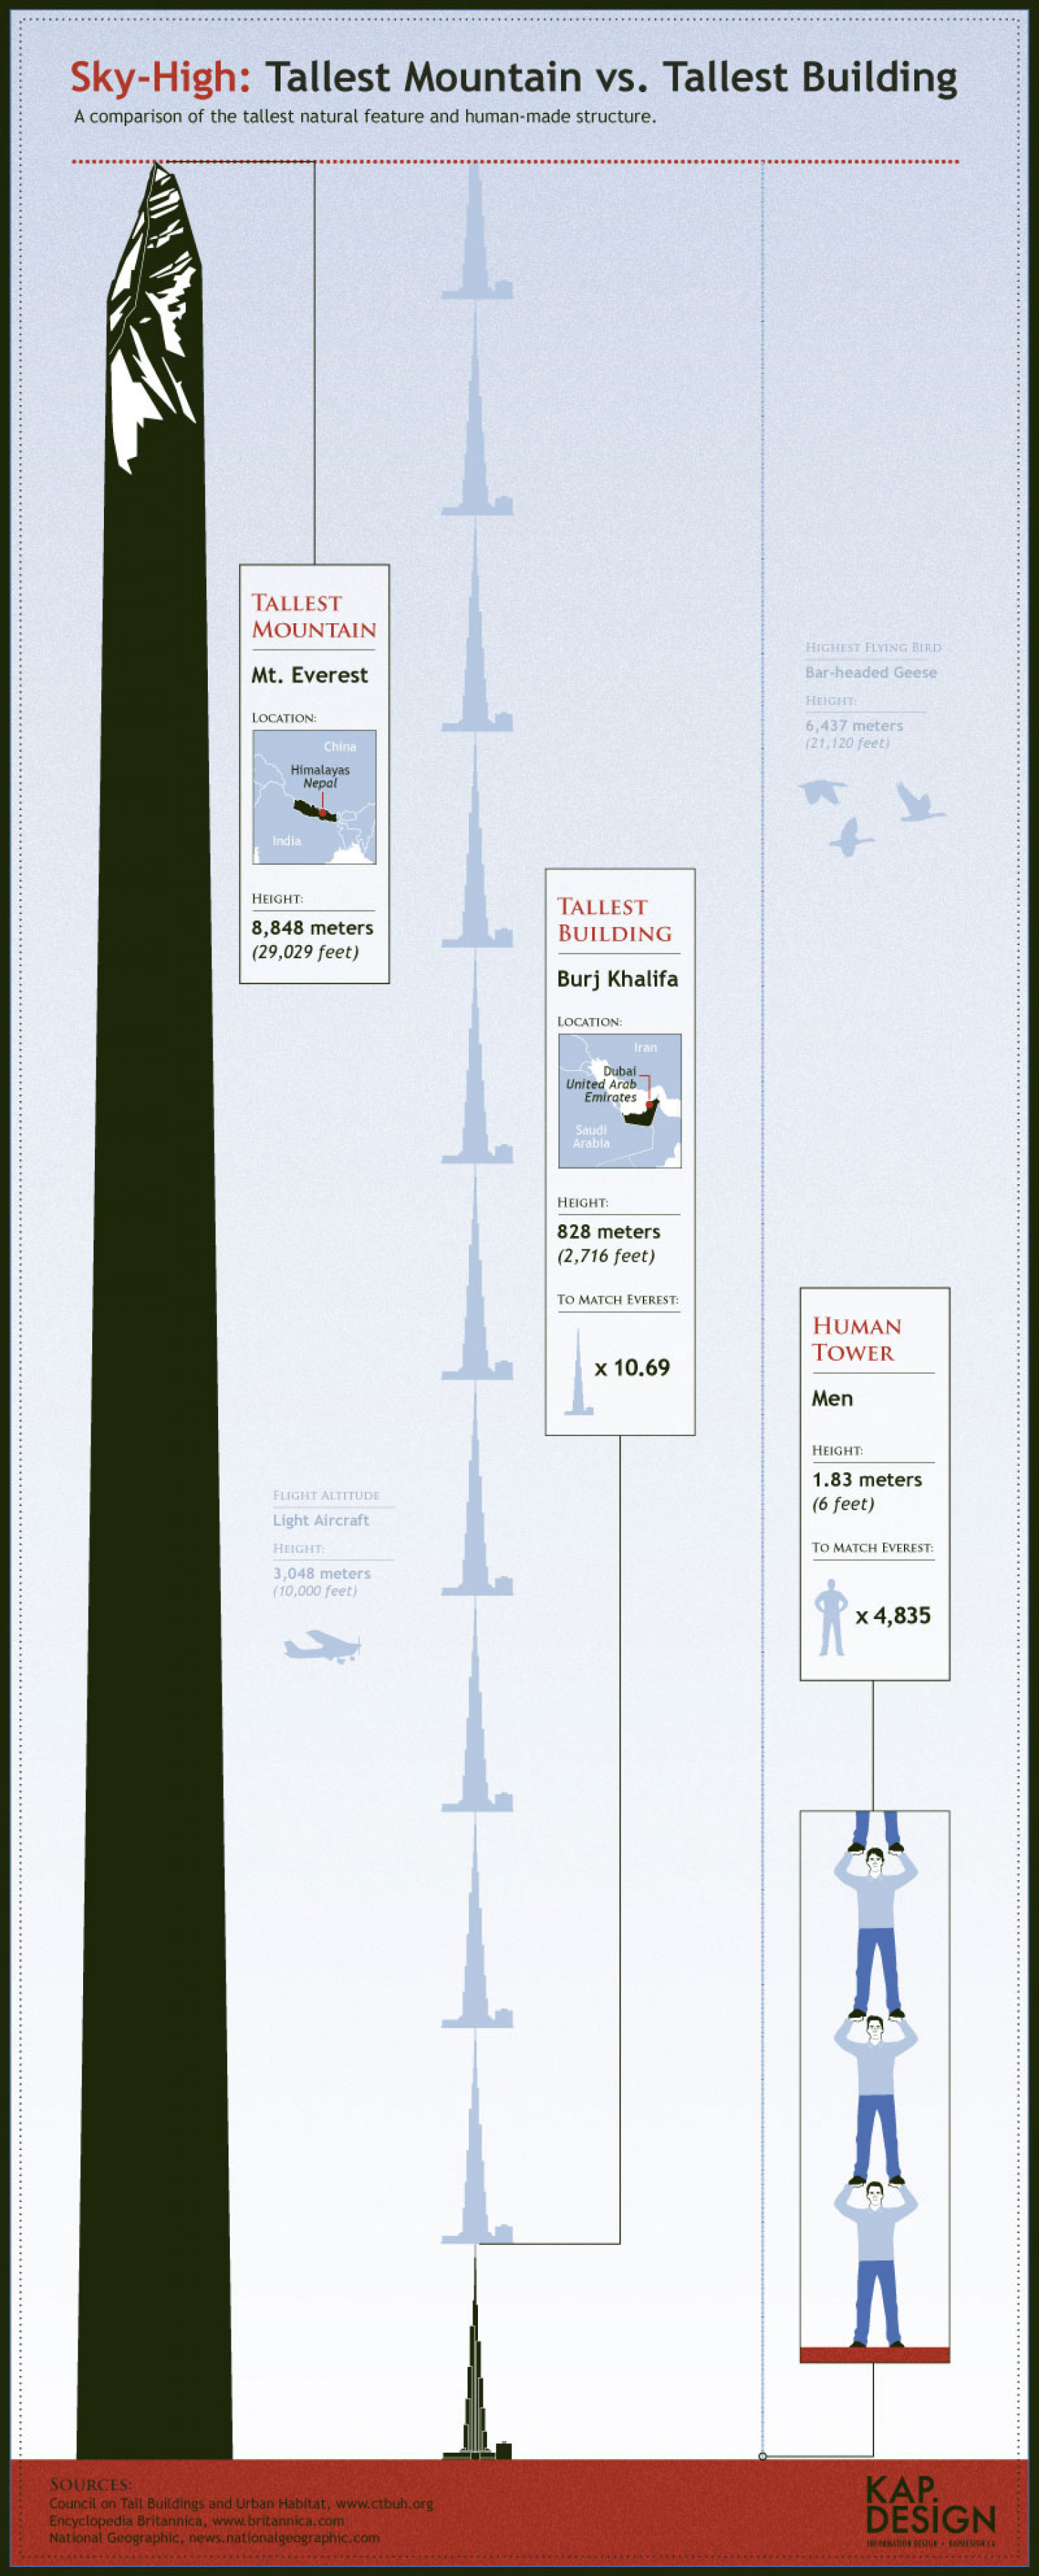 Sky-High: Tallest Mountain vs. Tallest Building Infographic